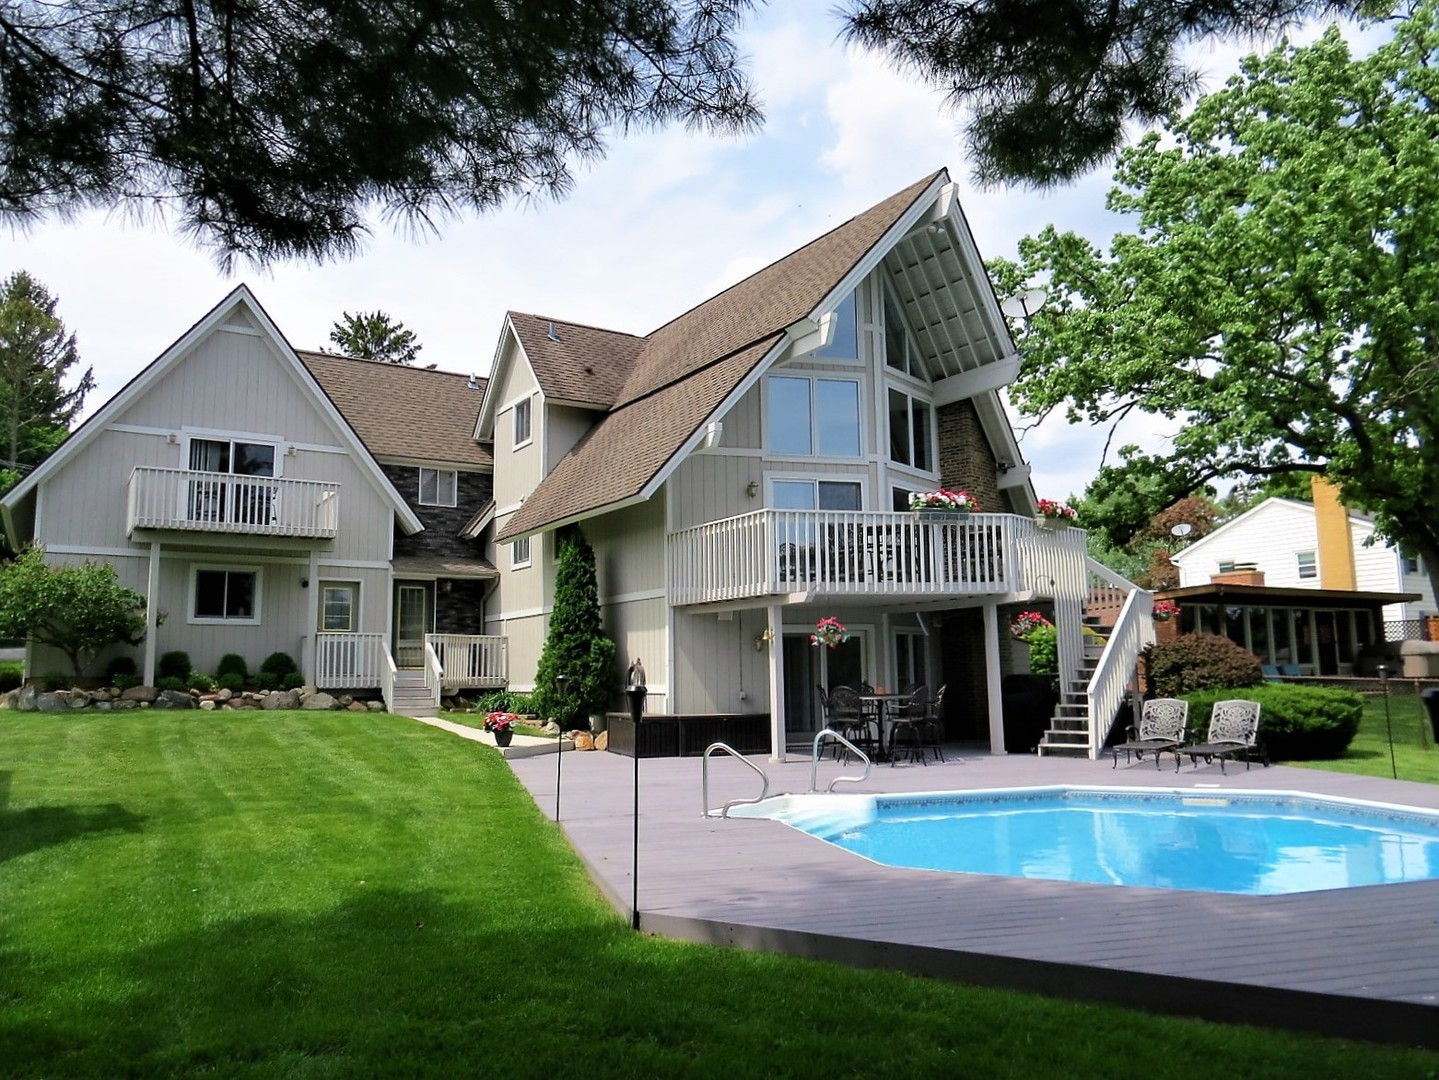 Property for sale at 2410 Orchard Beach Road, Mchenry,  Il 60050